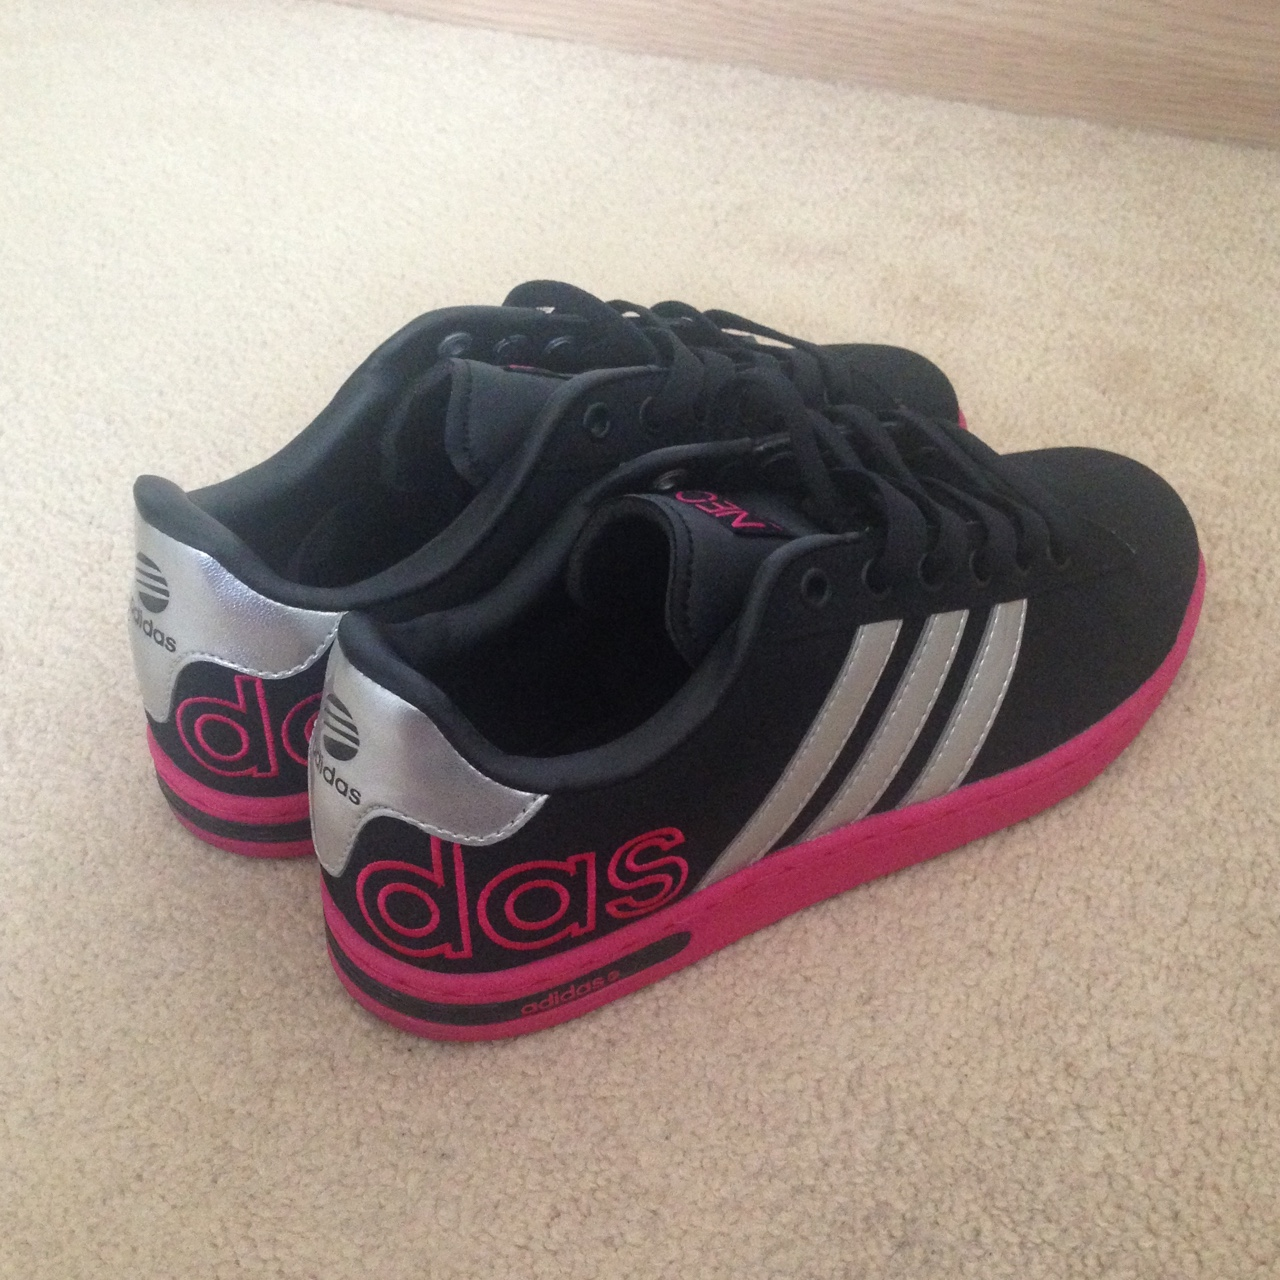 Adidas Neo Women's Trainers, Size 4, Suede. Black...